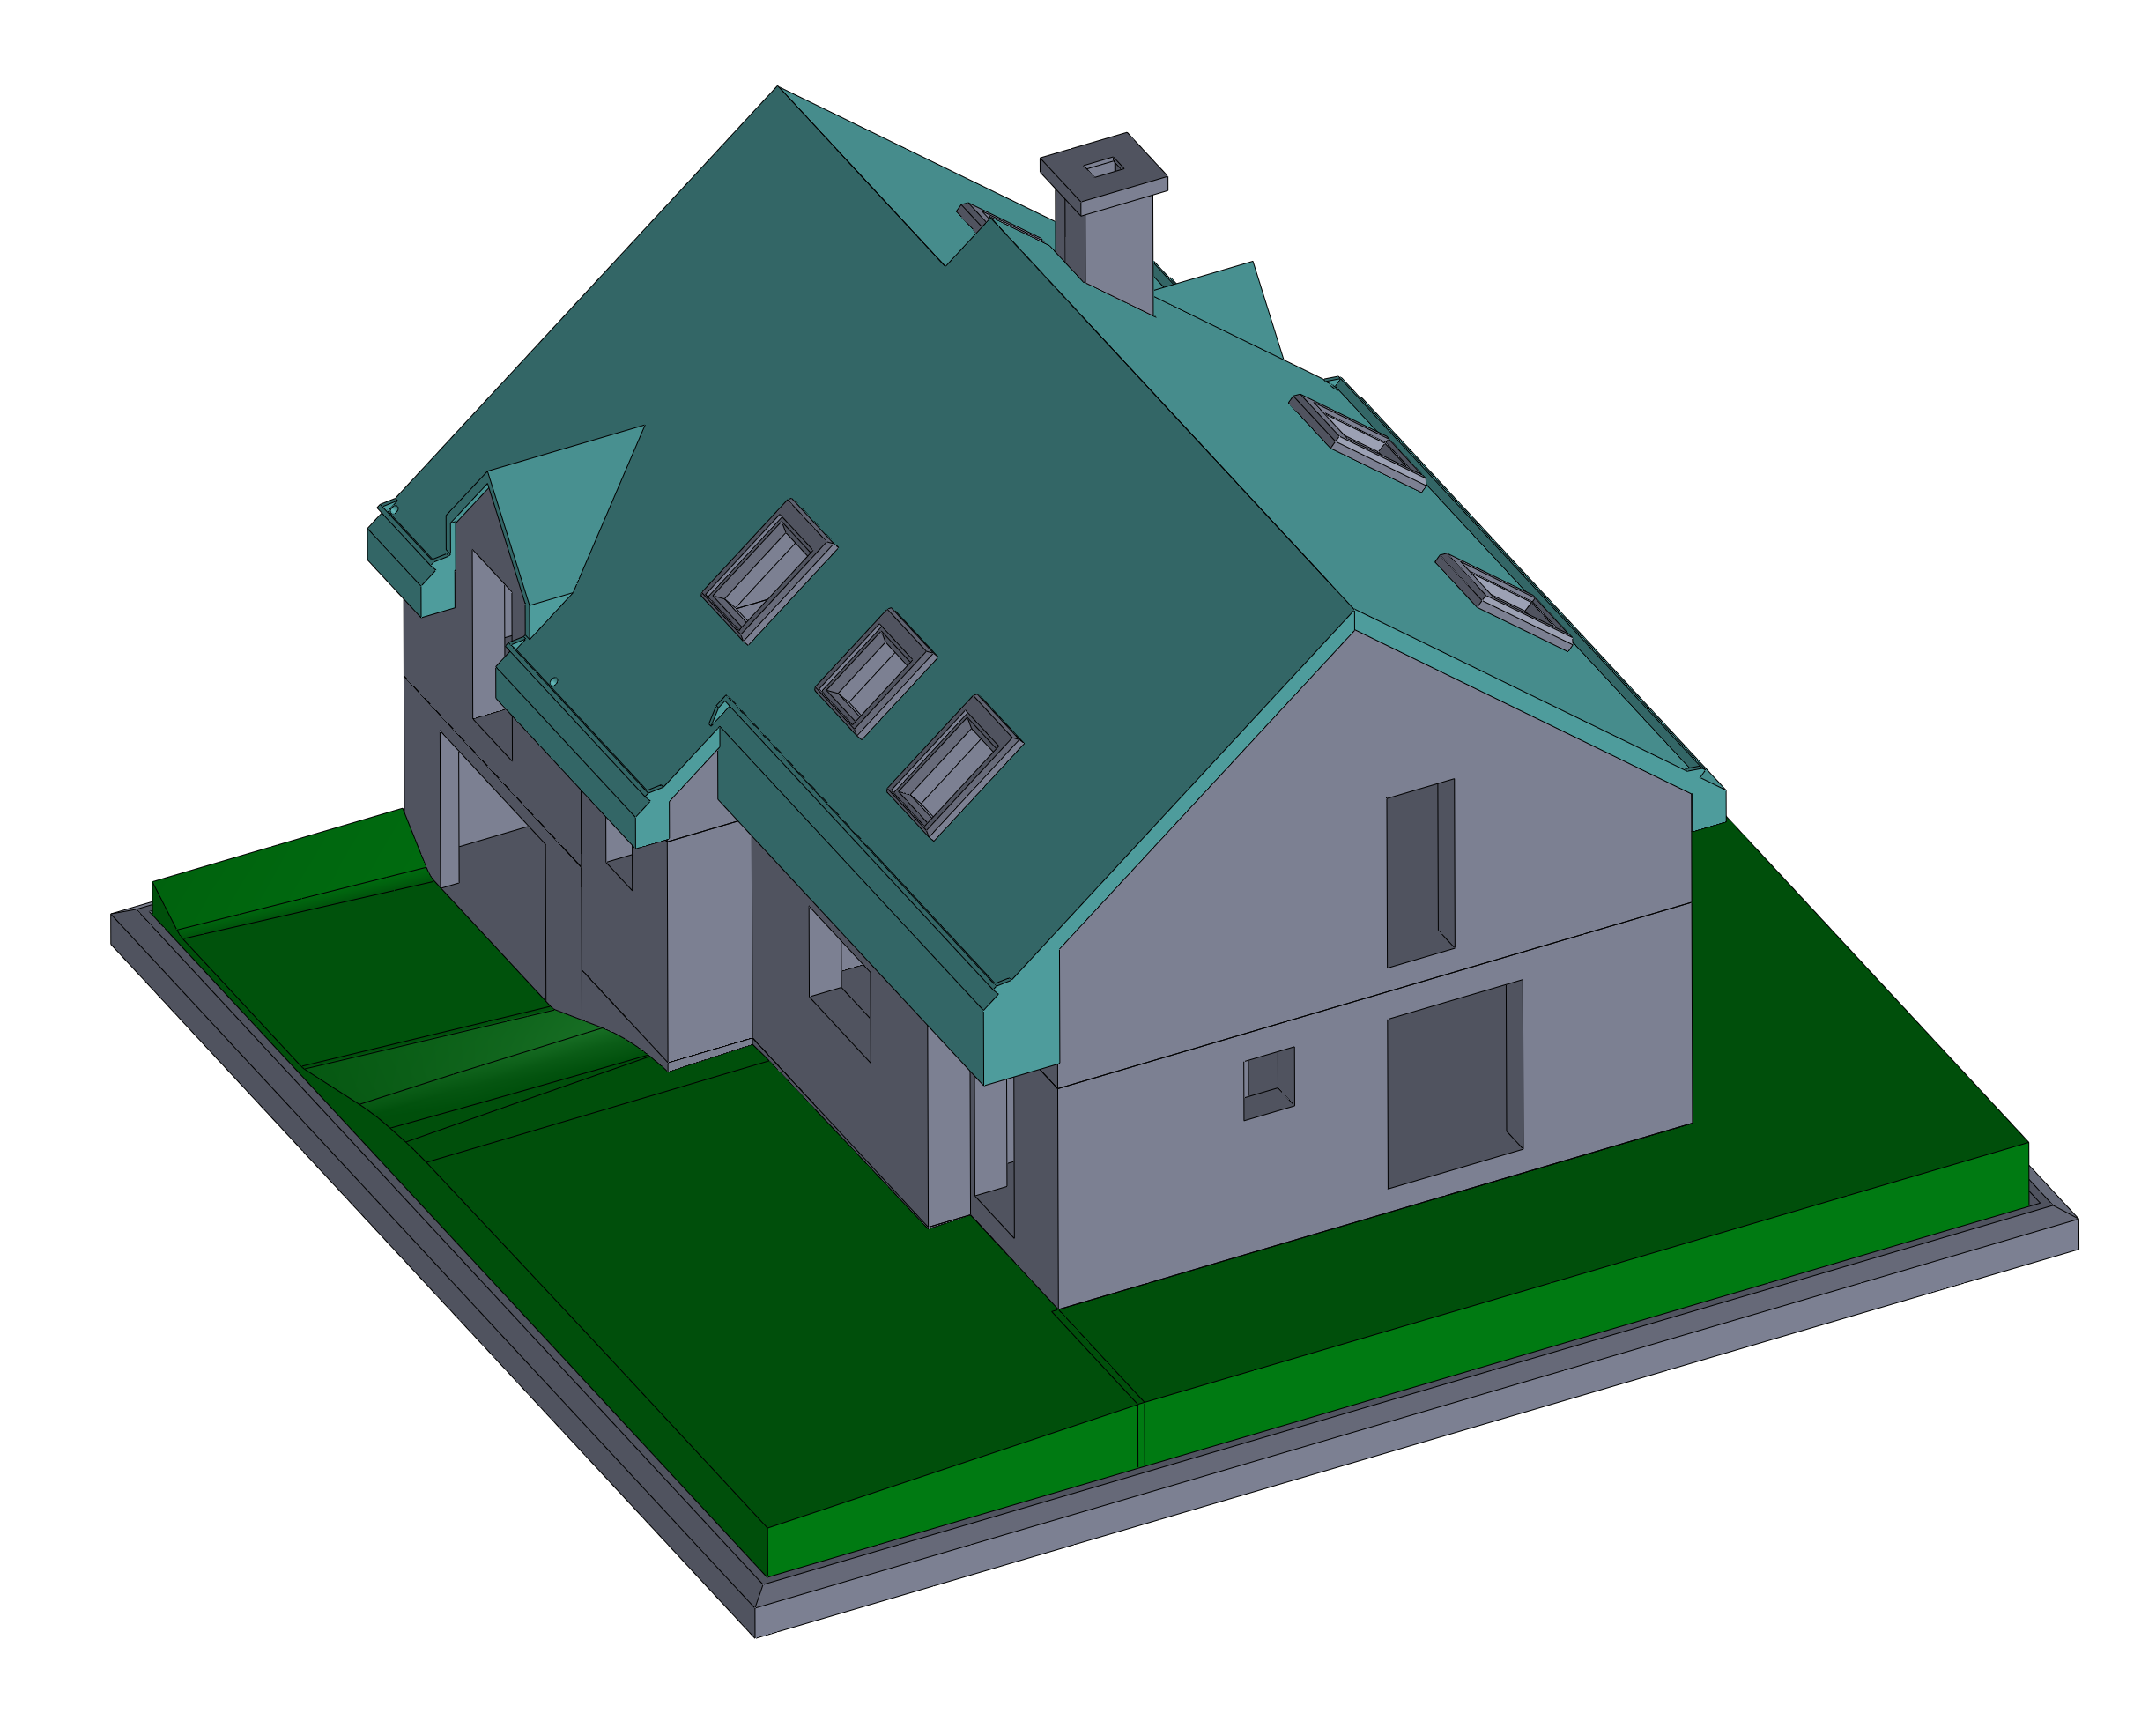 assemblage_maison_montee_1.png Download free STL file Semi-detached house • 3D printer model, mcbat